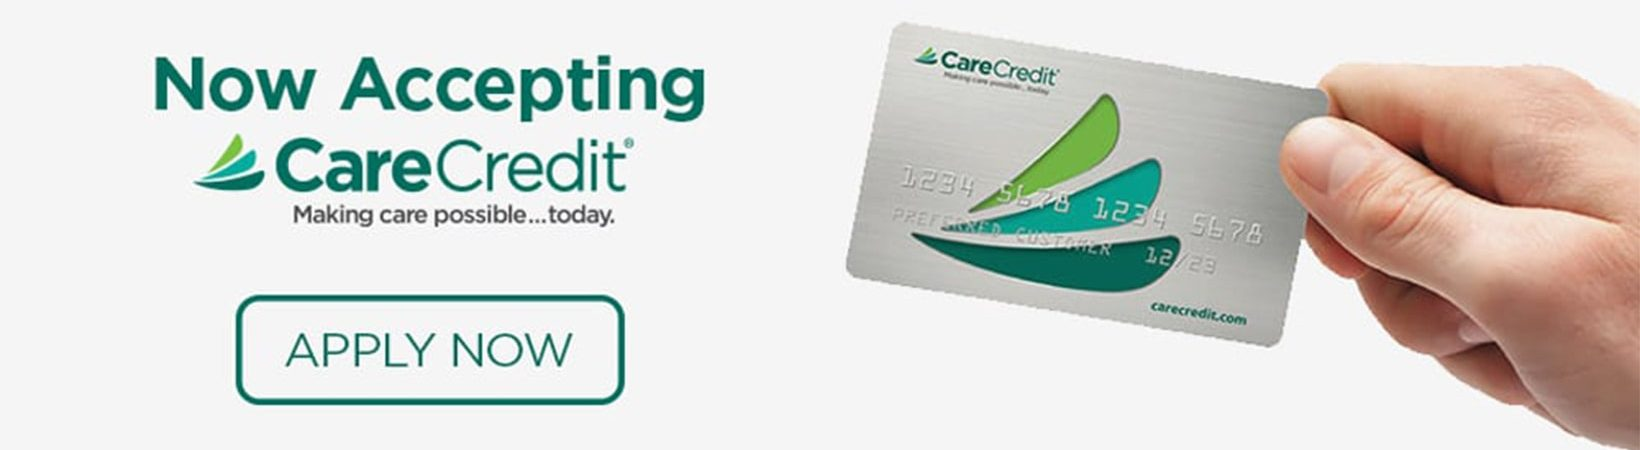 A close up of a CareCredit card